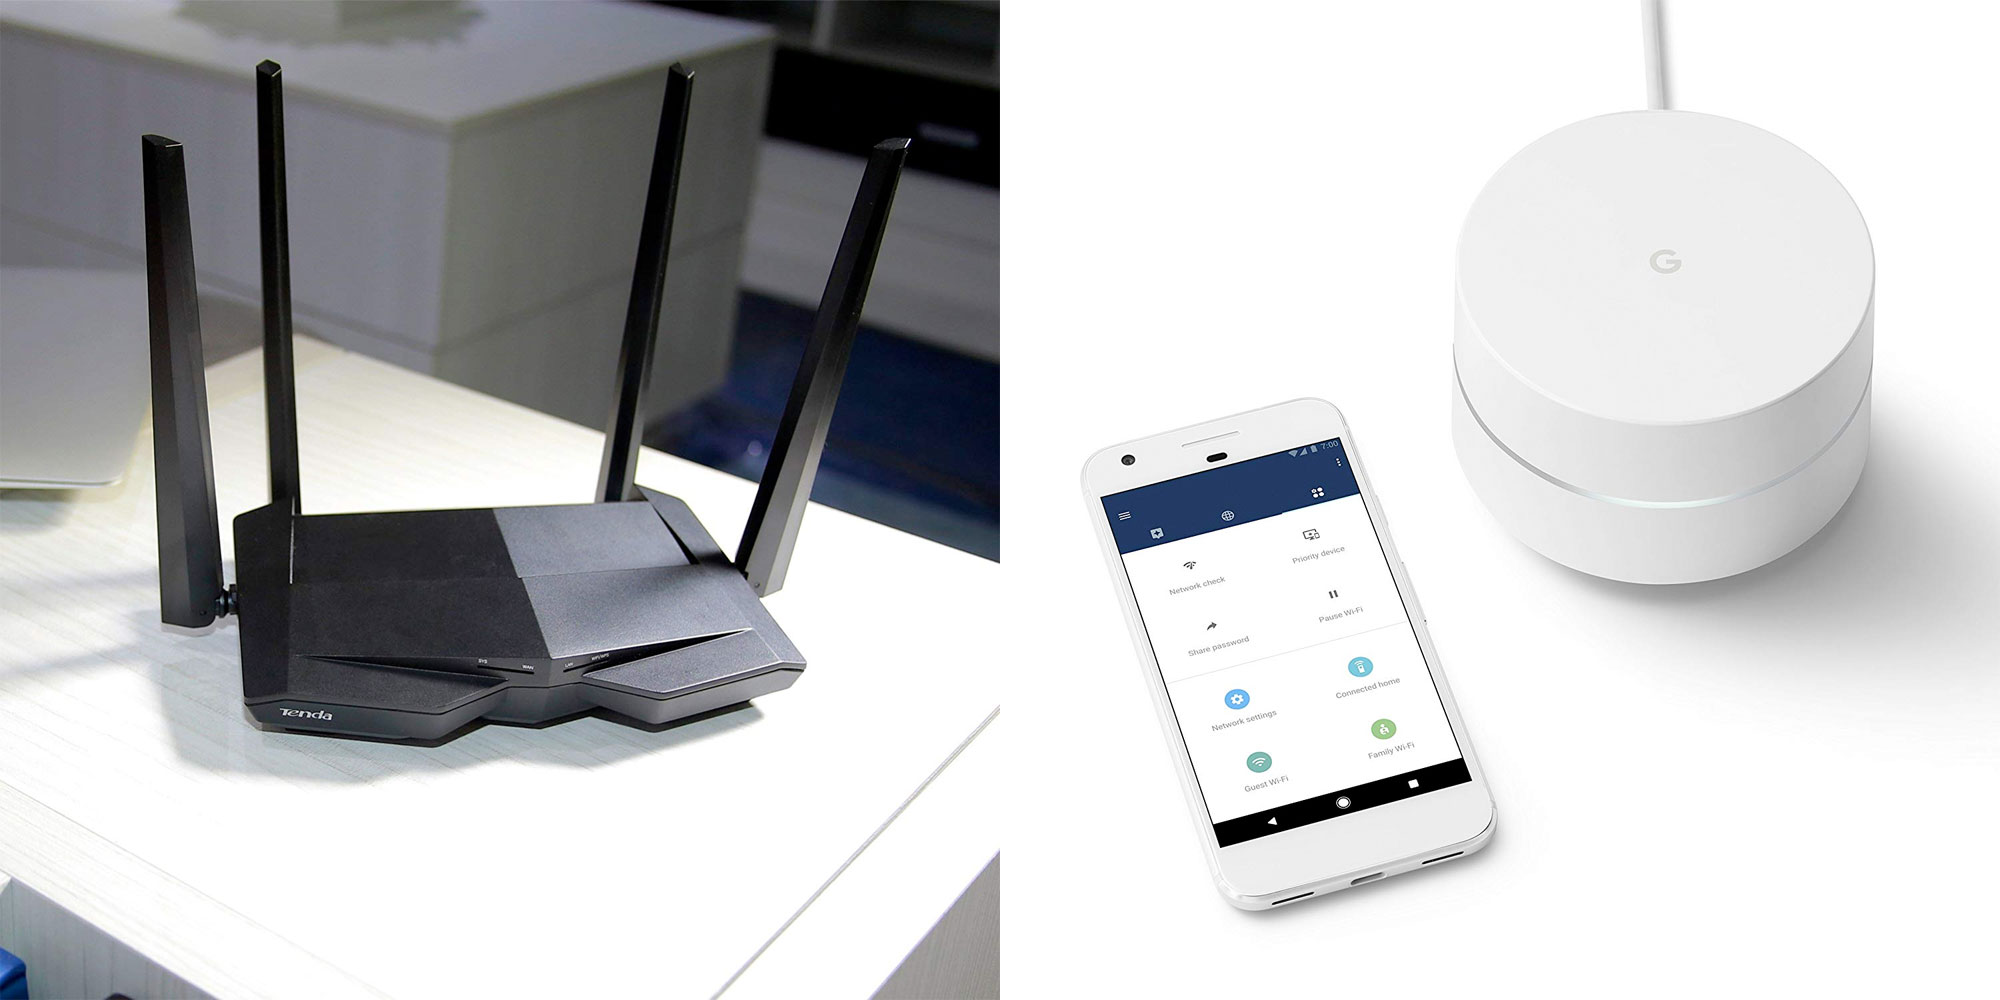 Is your Wi-Fi game lacking? These routers provide better wireless Internet to your home from $37